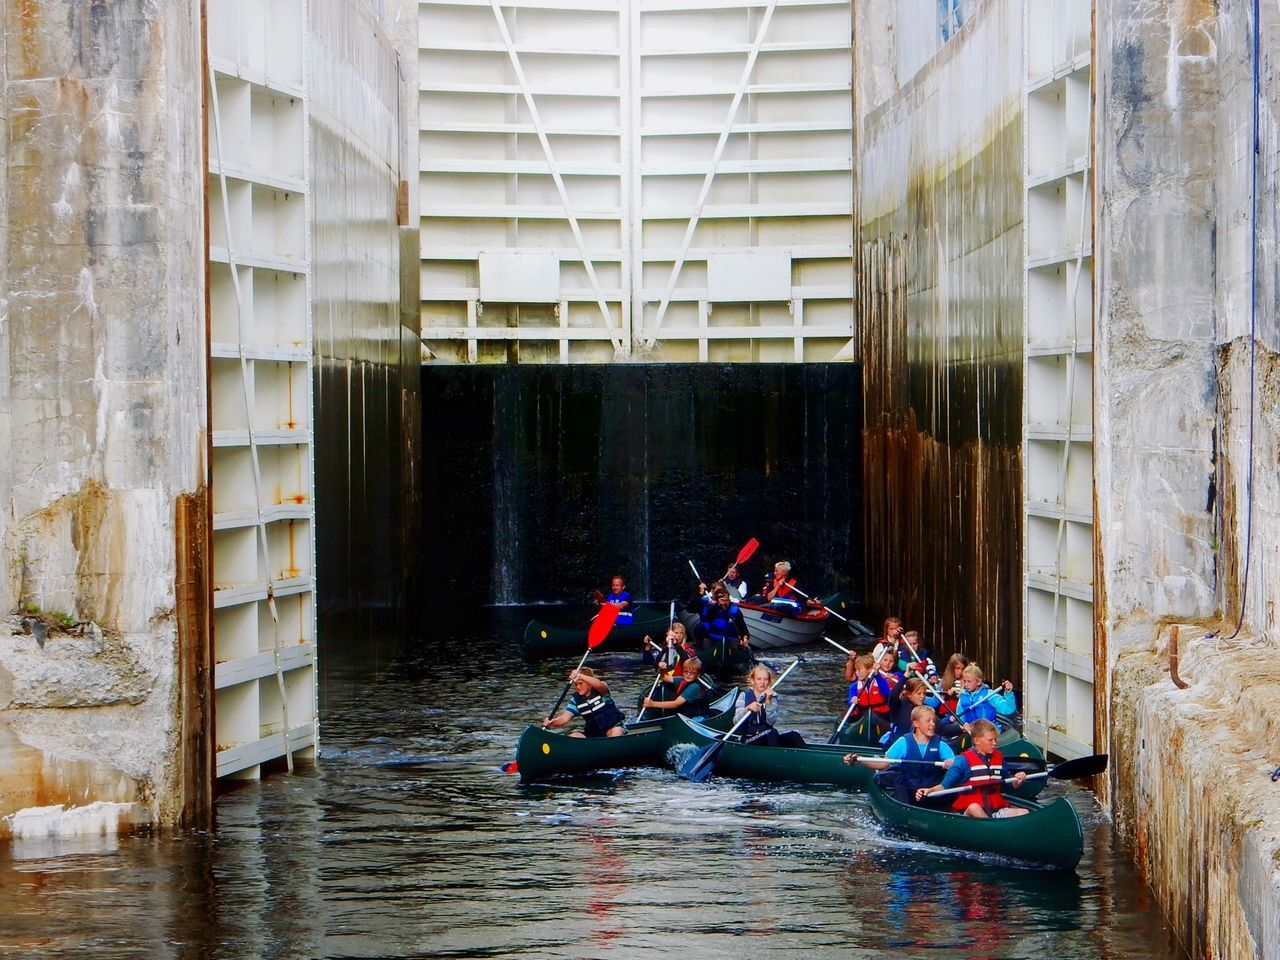 A school class canoeing on a canal and through the river locks River Locks River Canoing Canoe Canoeing Wildlife Wildlife & Nature Active Lifestyle  School Activity Outdoors Adventure Buddies Sport Sports Sports Photography Leisure Activity Activity Outdoor Activity Rowing Canal Boat